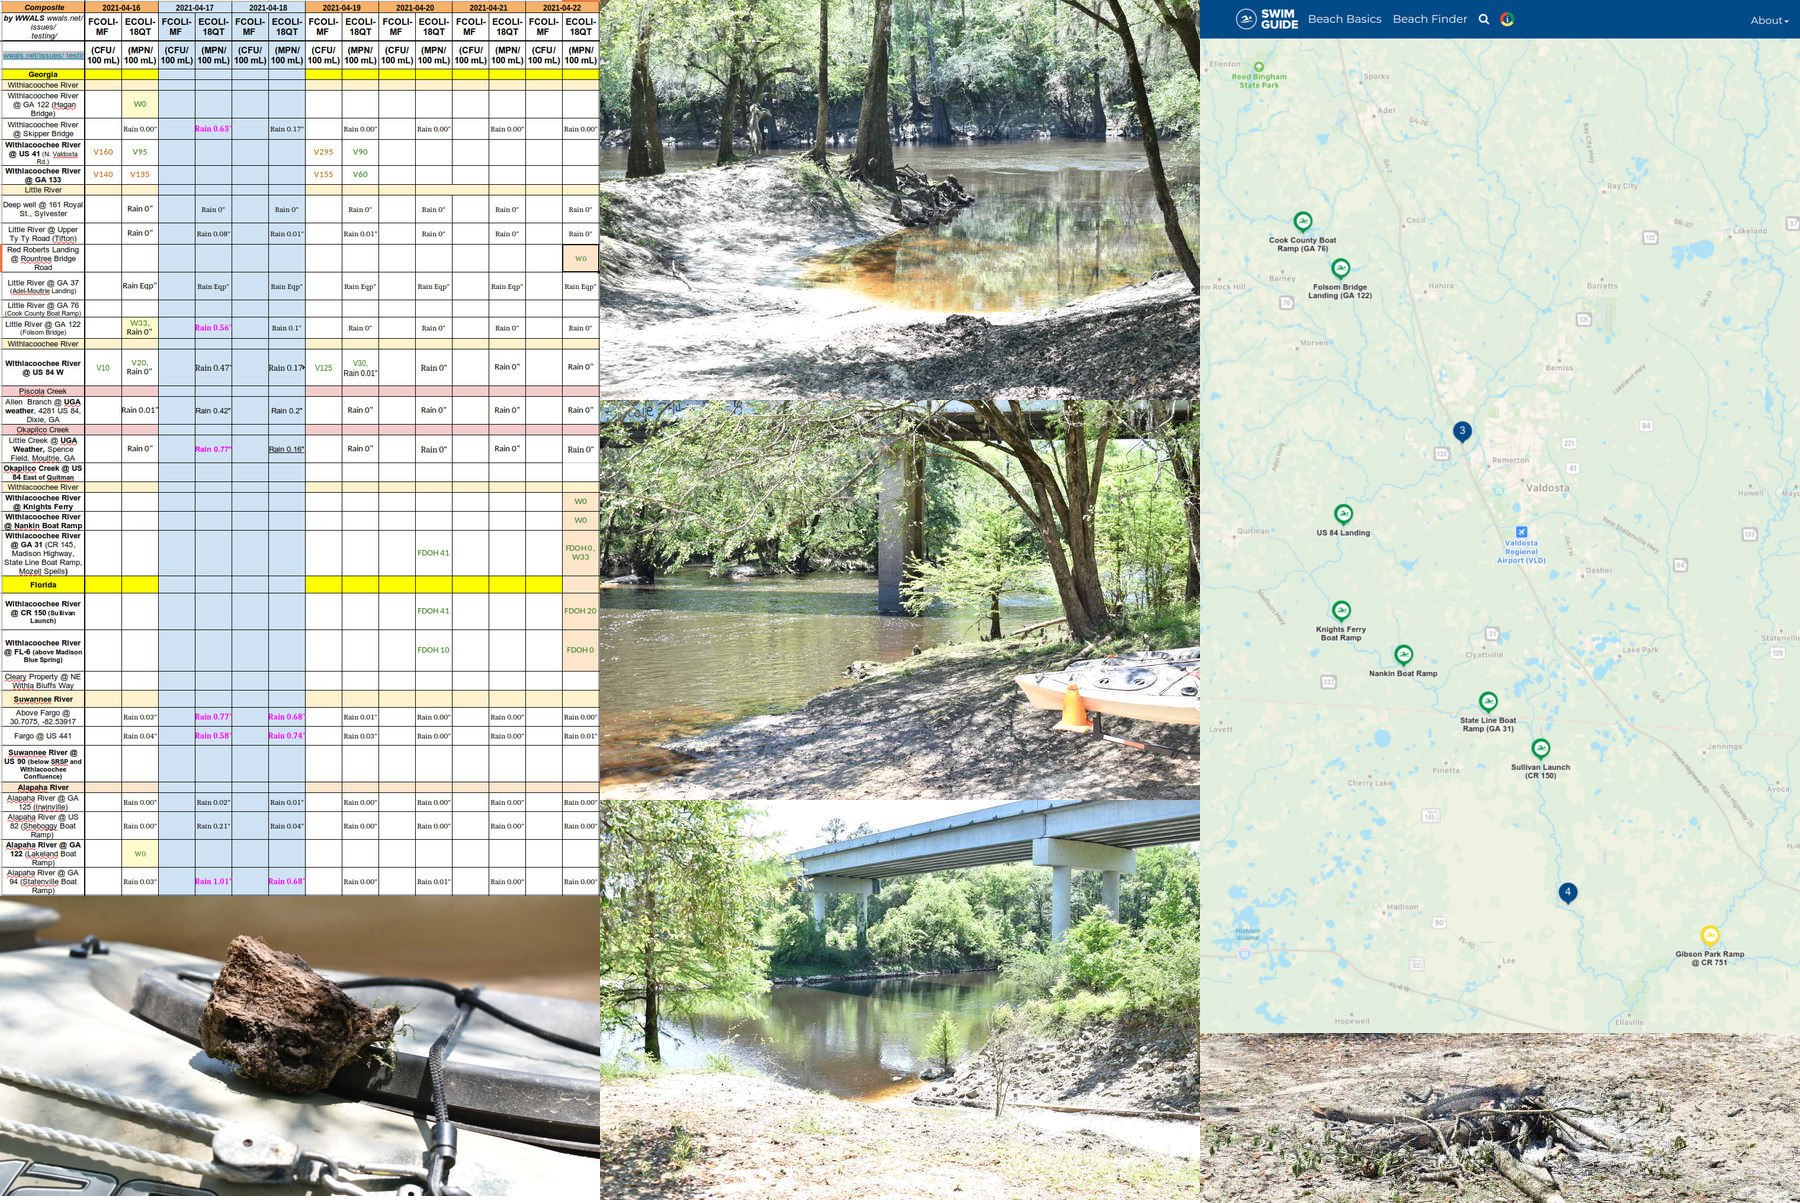 [Clean week, agate, Withlacoochee River, Little River @ Red Roberts to Suwannee River Clean]